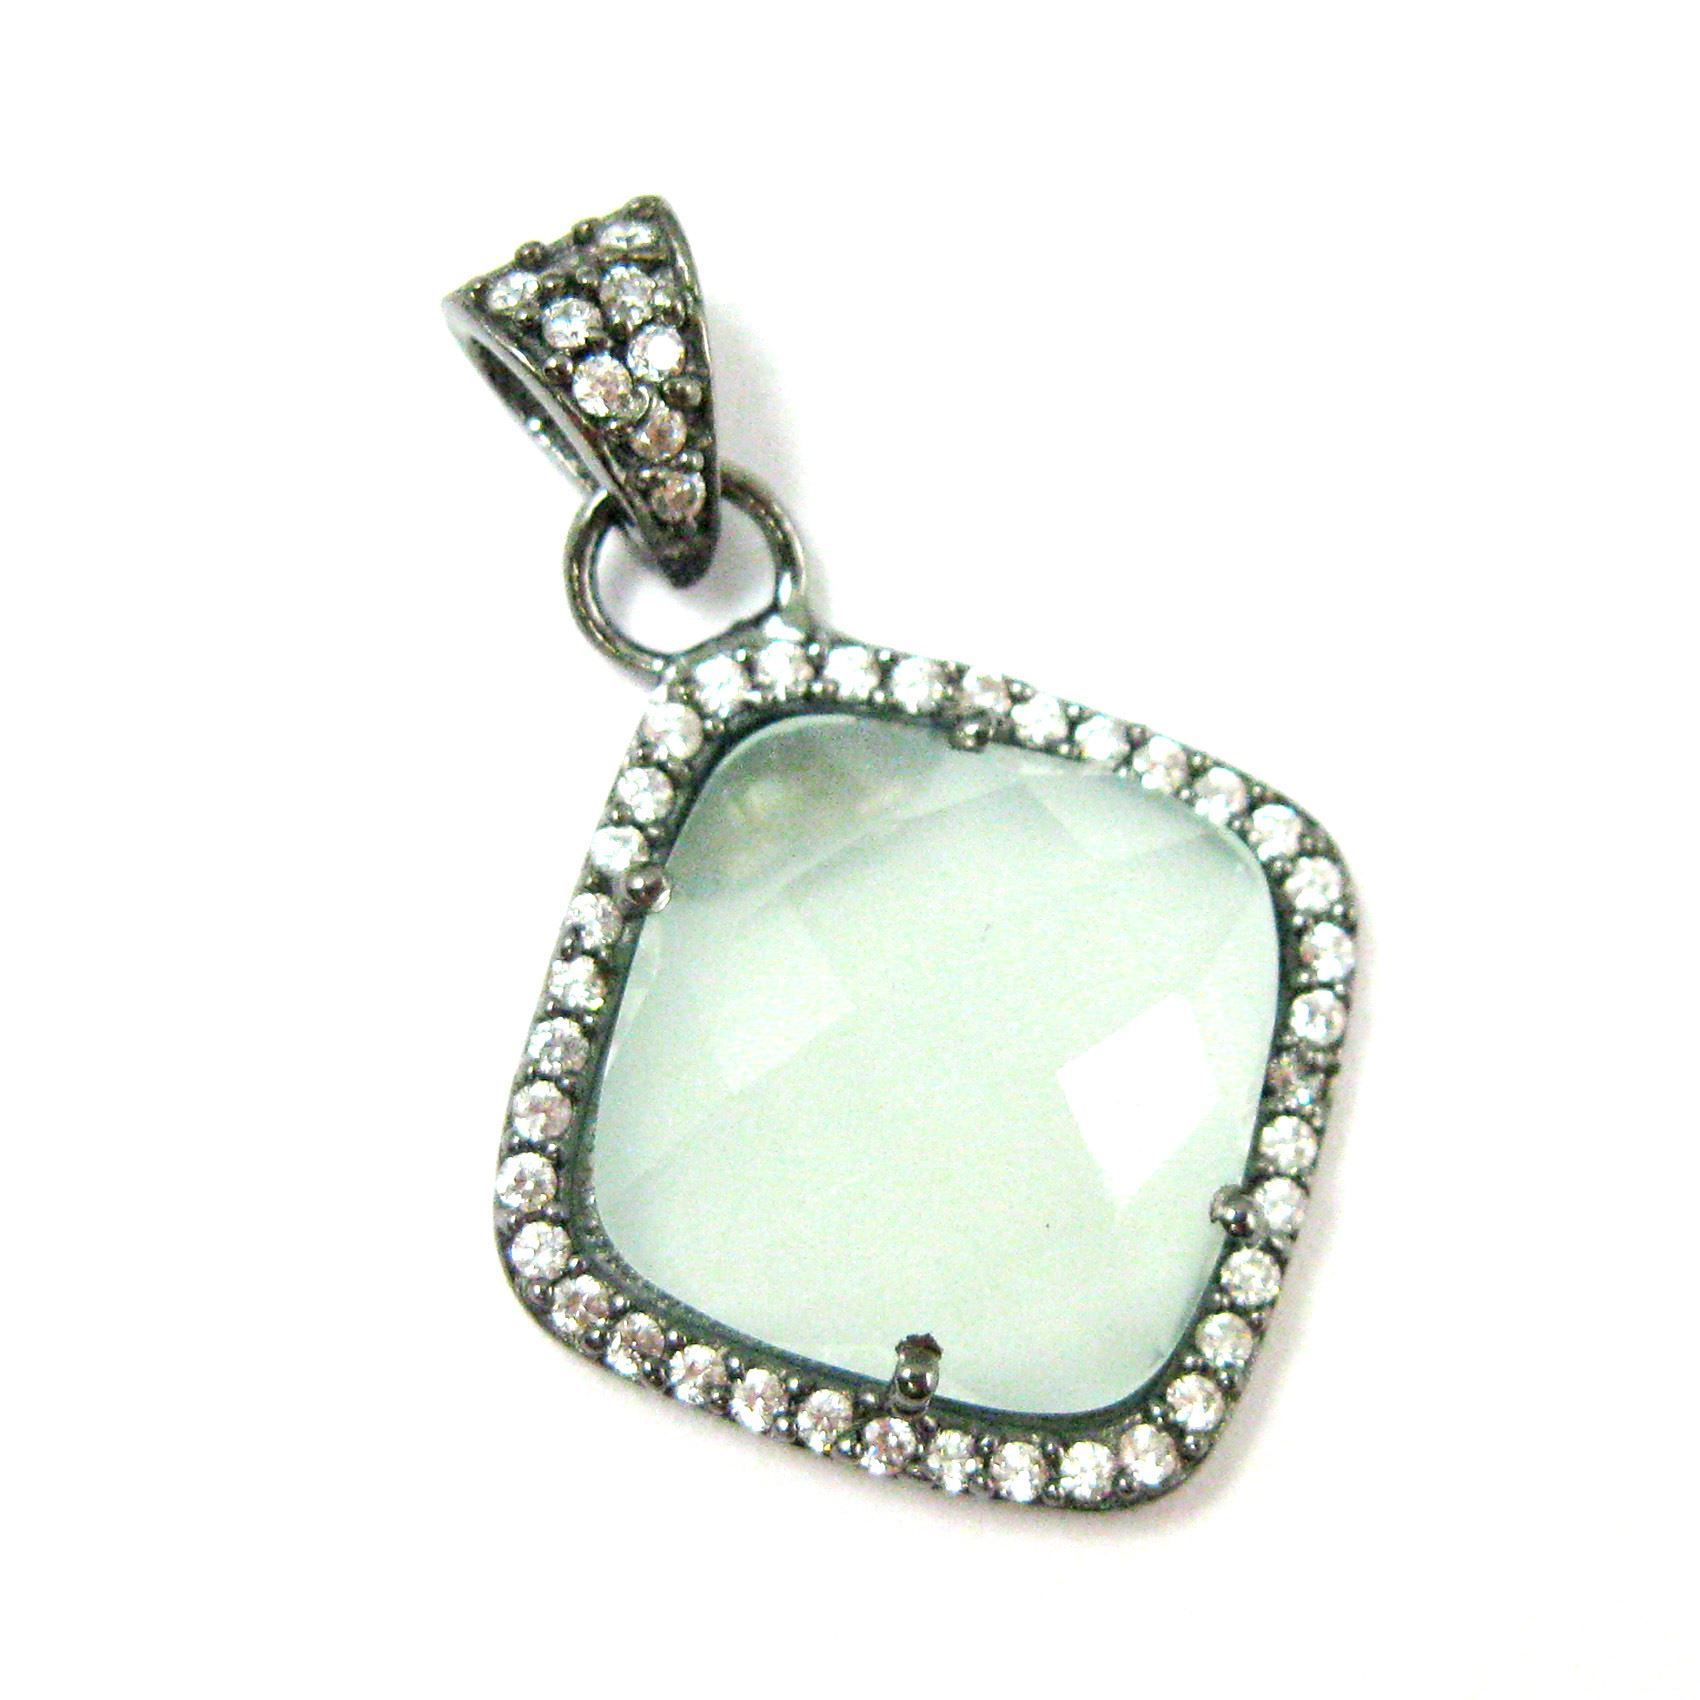 Oxidized Sterling Silver Pave Bezel Gemstone Pendant - Cubic Zirconia Pave Setting -  Diamond Shape Faceted Stone-Aqua Chalcedony - 17mm